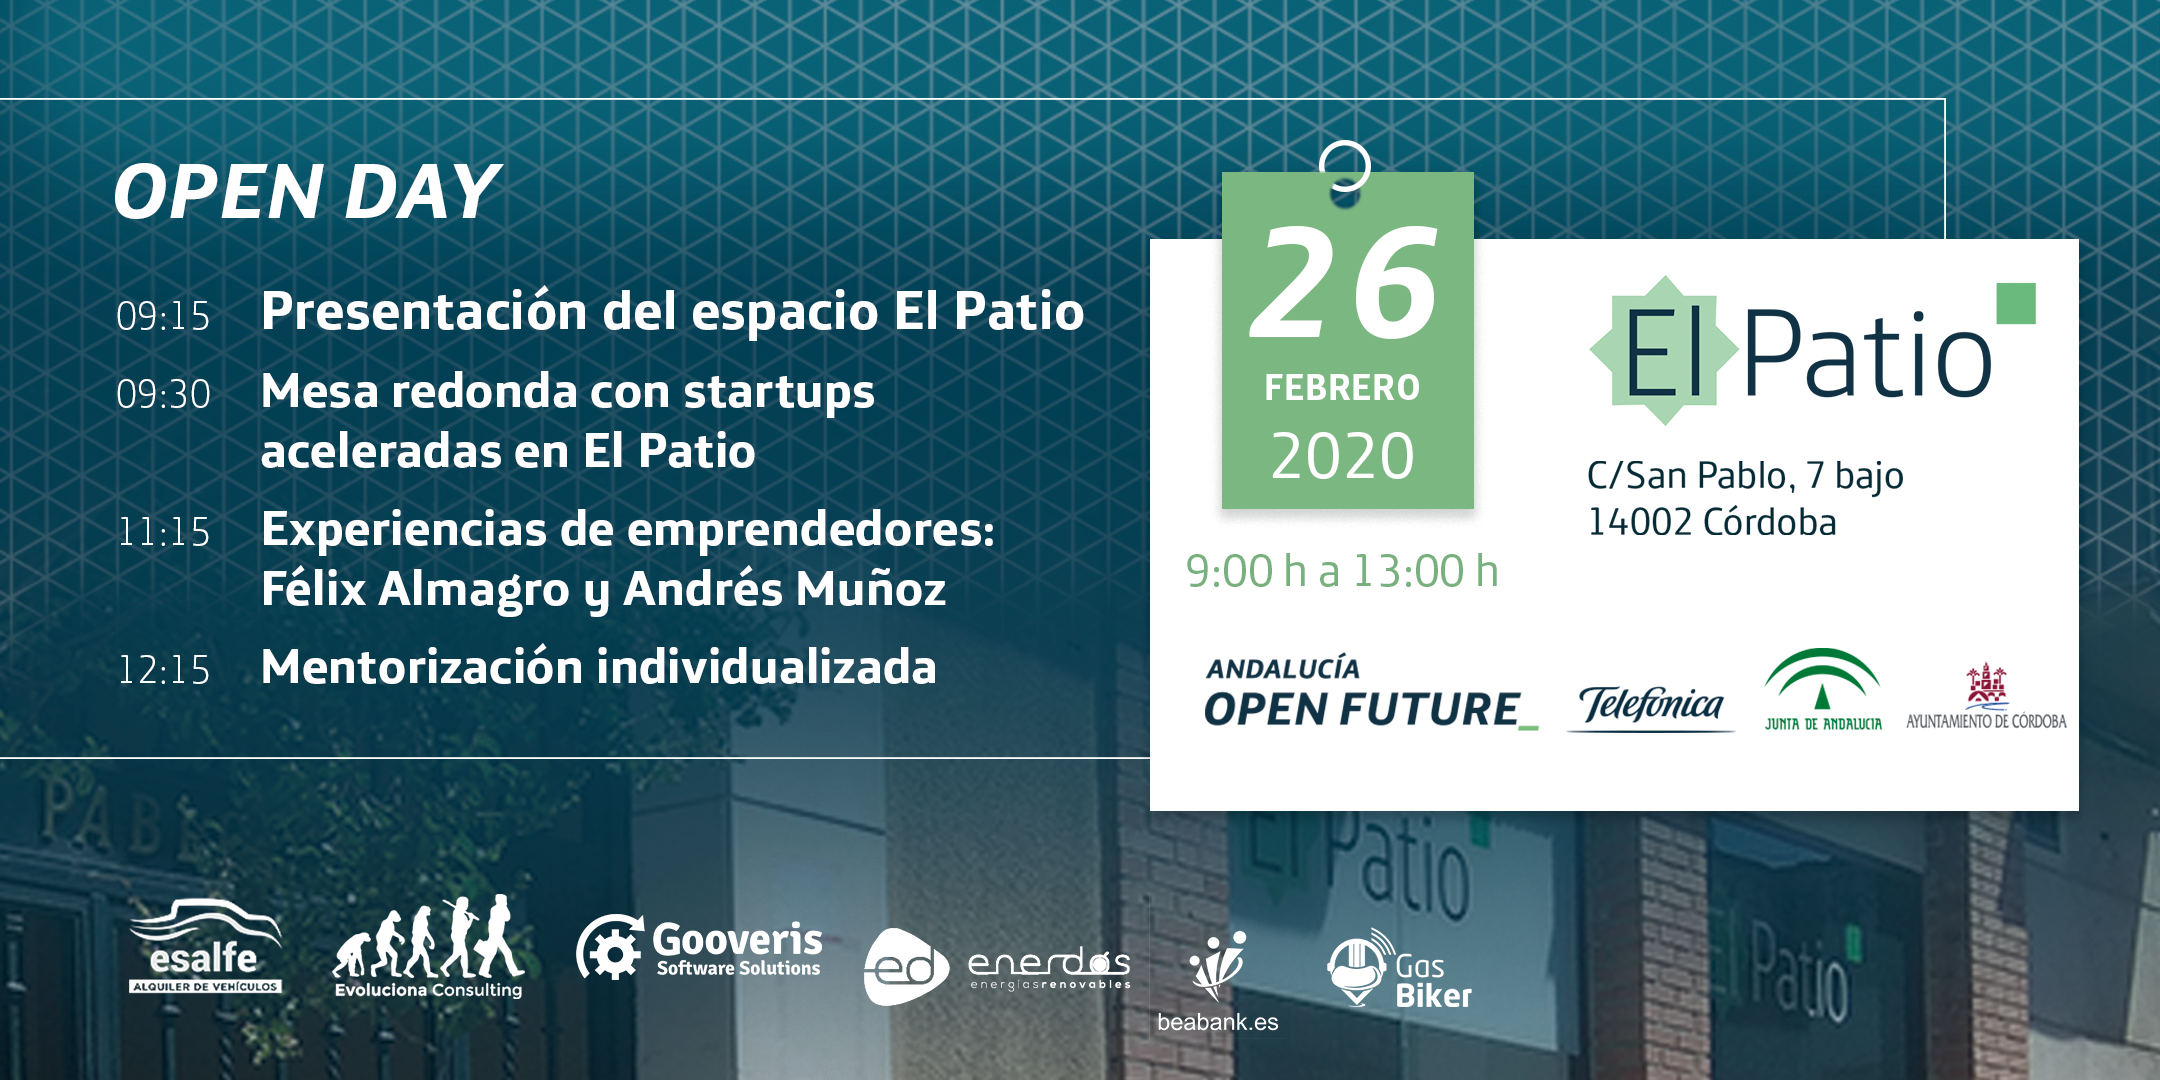 Open Day El Patio febrero